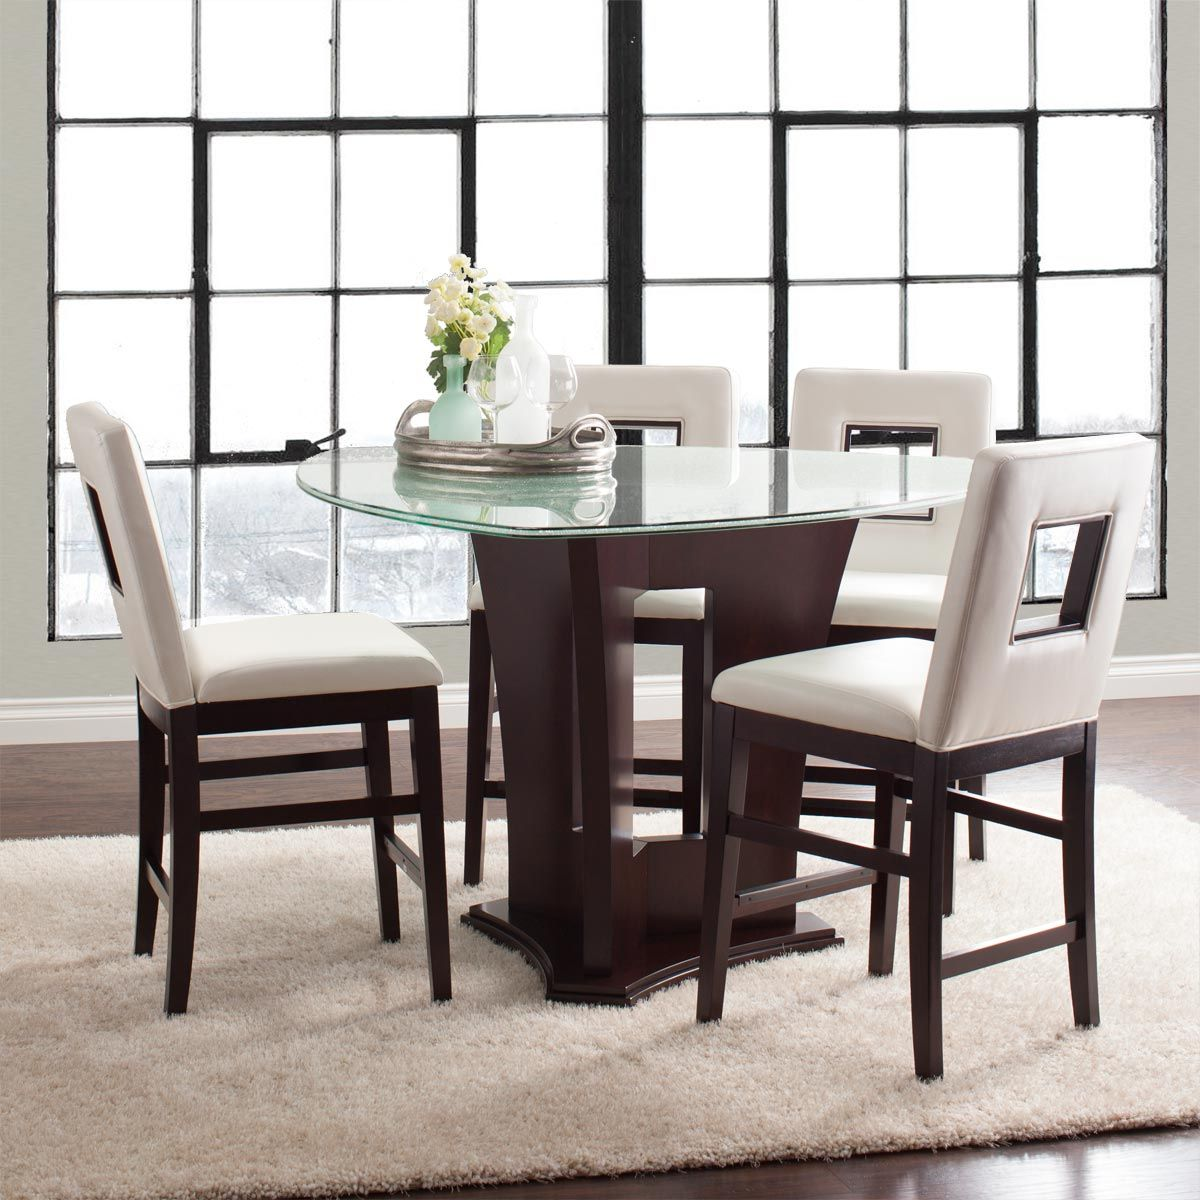 The Soho 5 Piece Glass Dining Set Offers Contemporary Style With A Beautiful Crackled Glass Tabl Glass Dining Room Sets Dining Room Table Set Round Dining Room